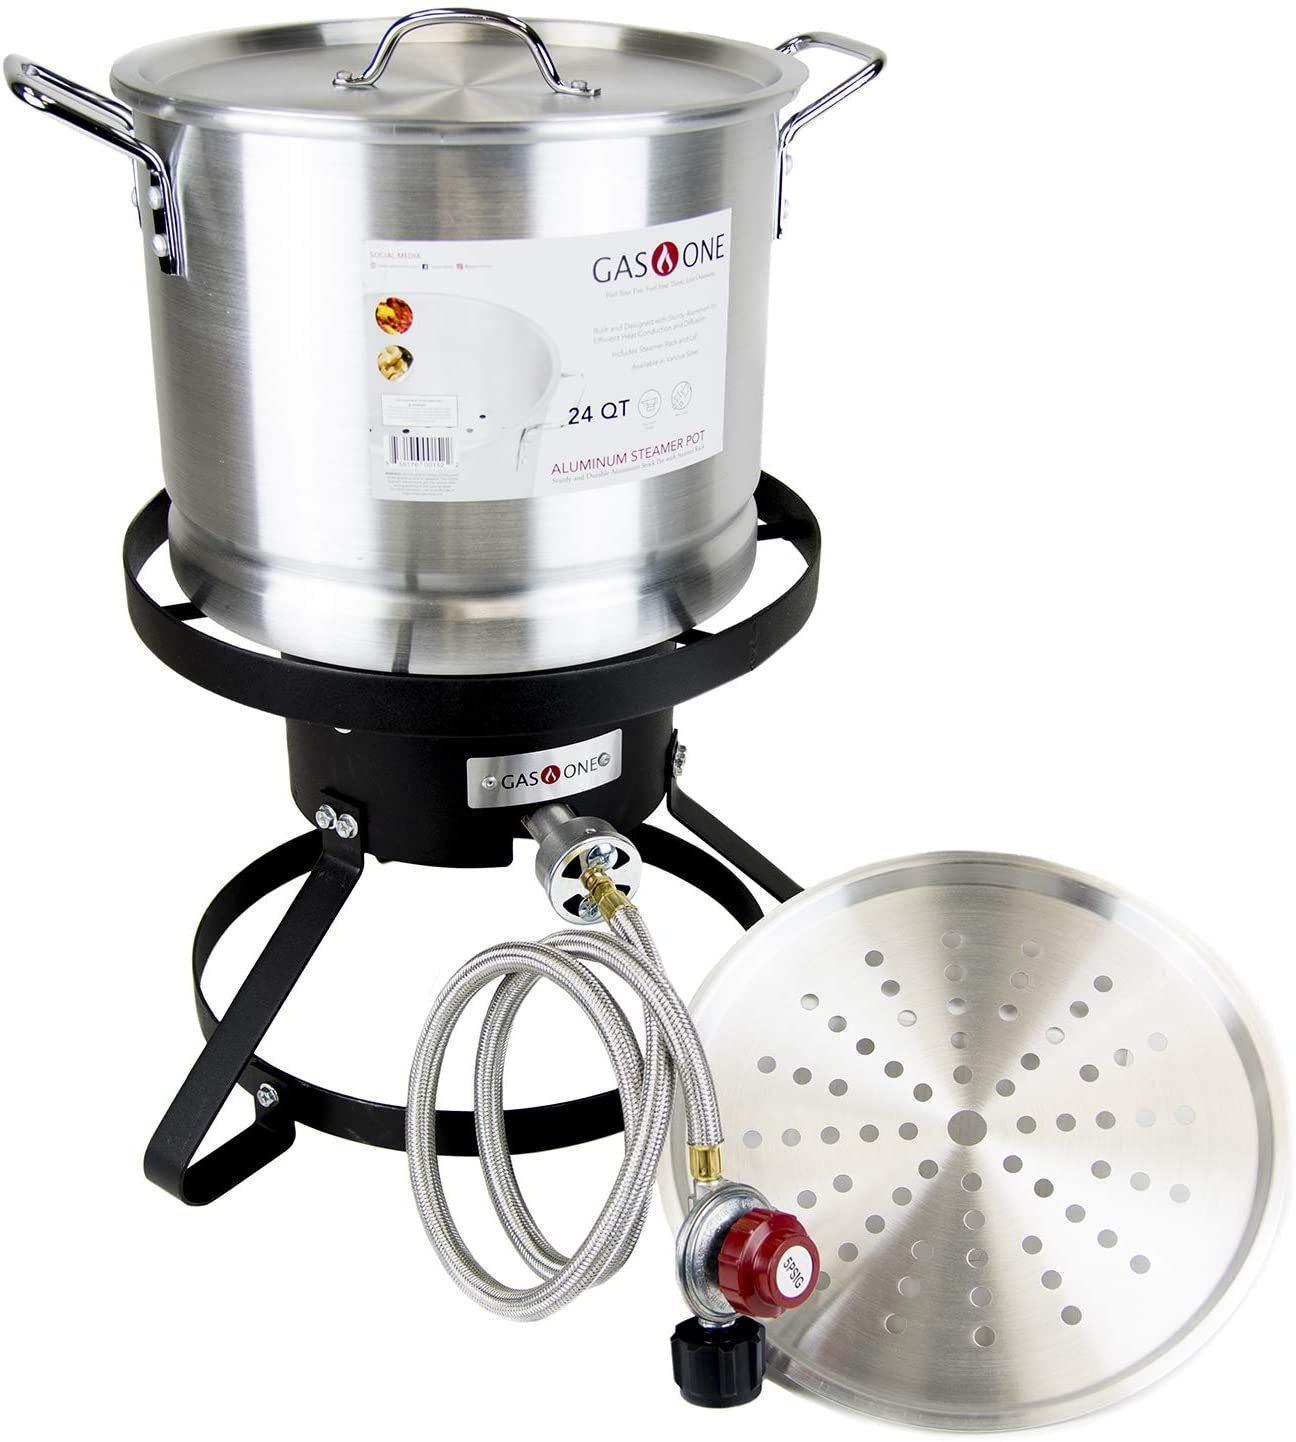 GasOne B-5155 Propane Burner with Steamer Pot-Turkey Fry & Tamale